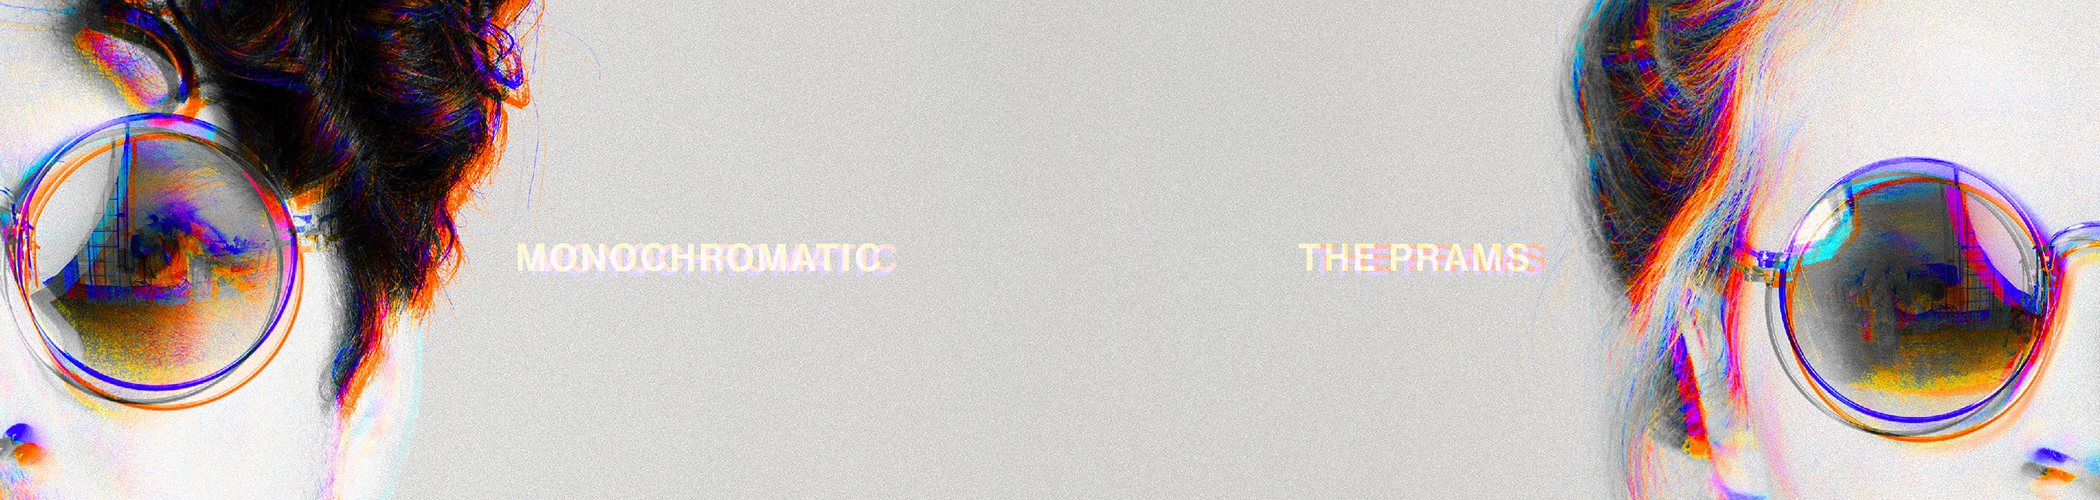 MONOCHROMATIC BANNER.png